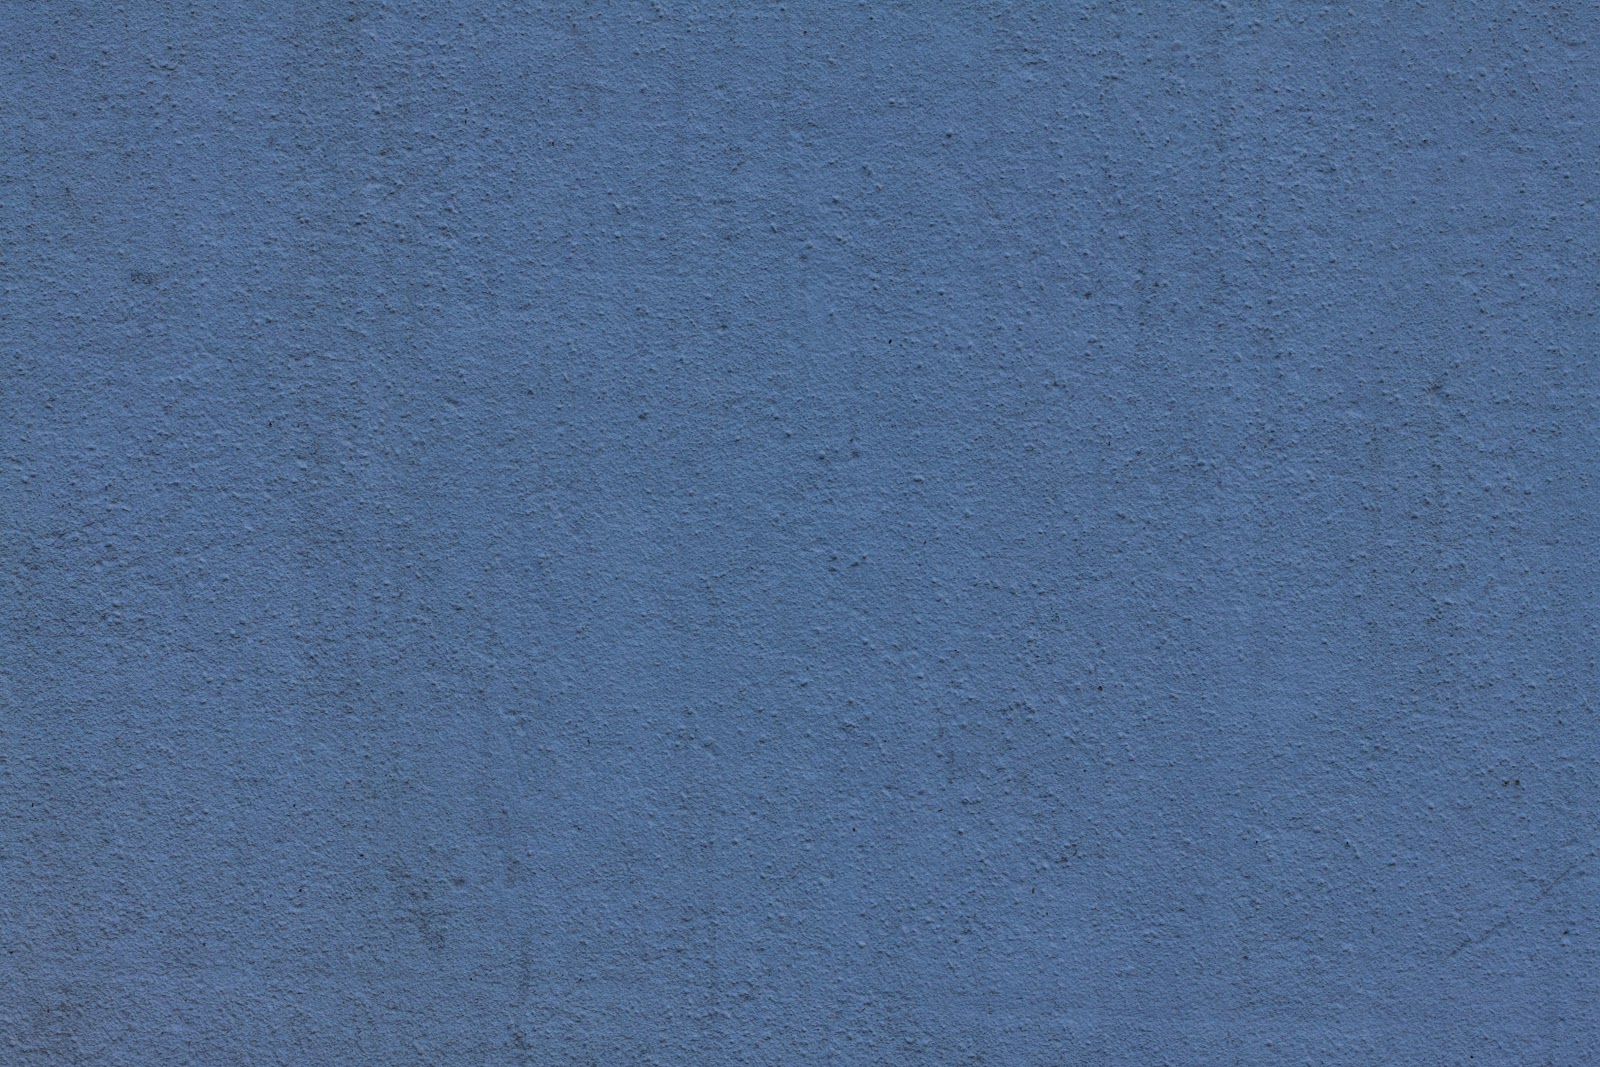 High Resolution Textures Blue Wall Plaster Texture Dirt